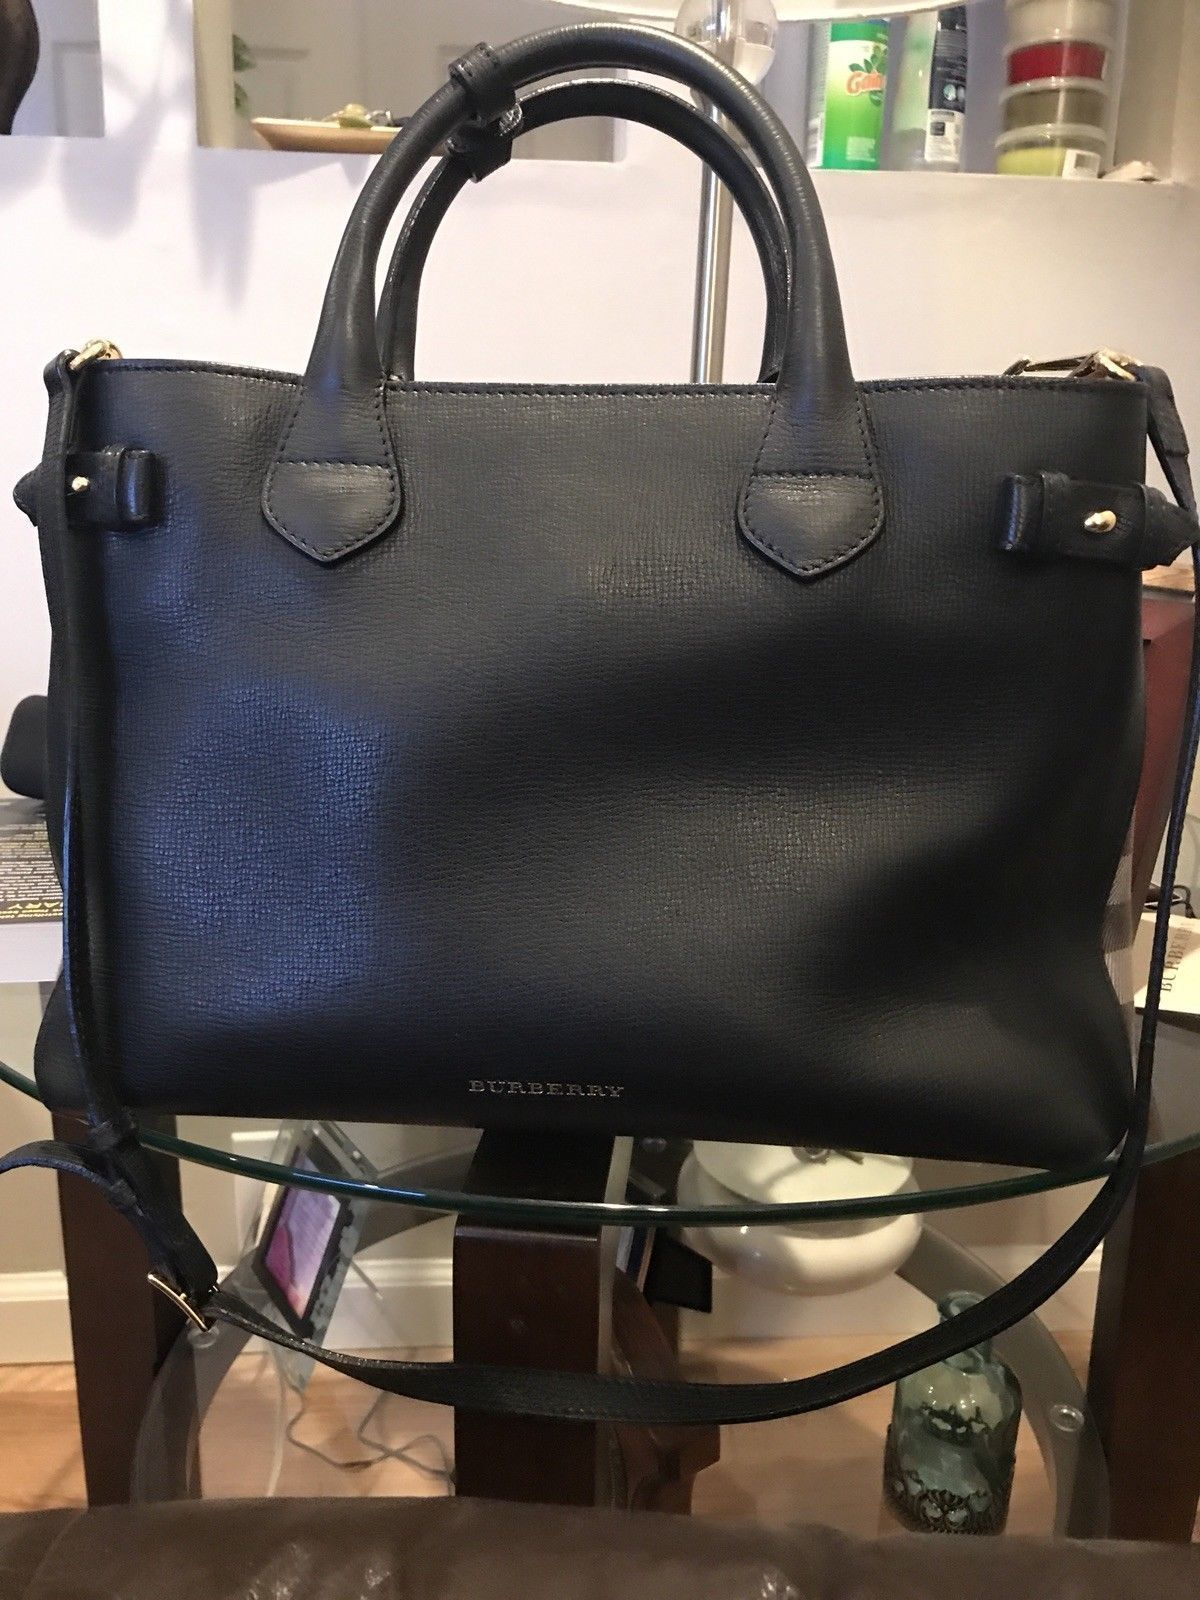 b47f2e7ca641 BURBERRY HANDBAG Large Banner- Derby House Check Calfskin Leather Tote